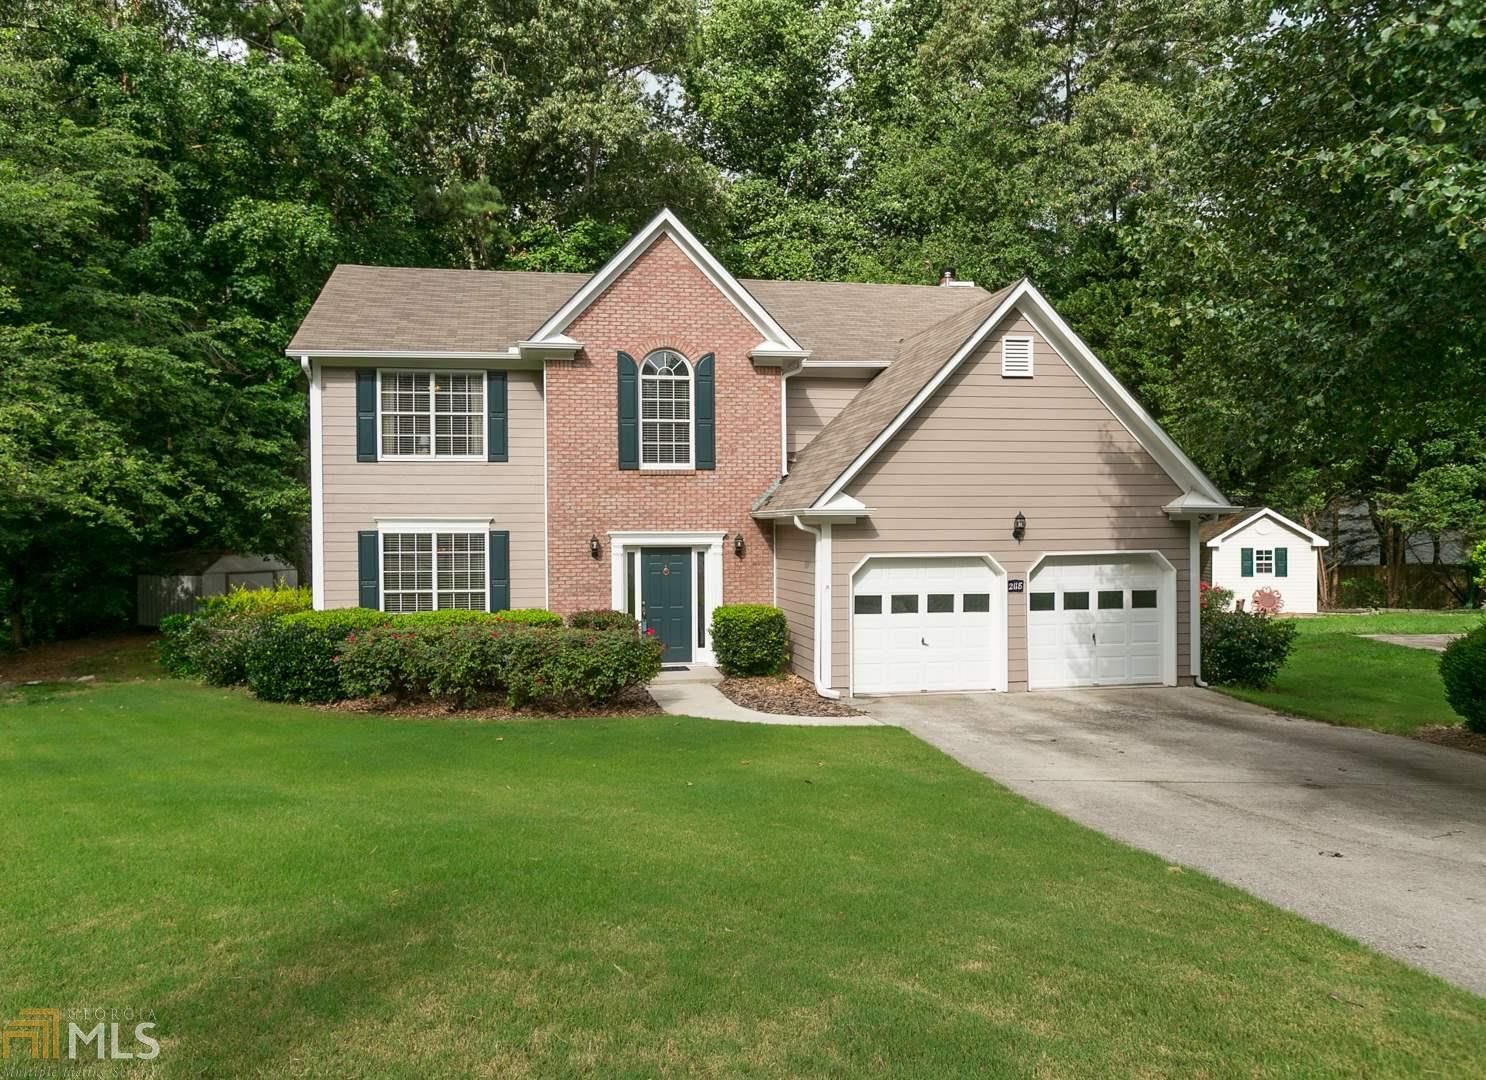 2118 Galleon Way, Dacula, GA 30019 - MLS#: 8817714